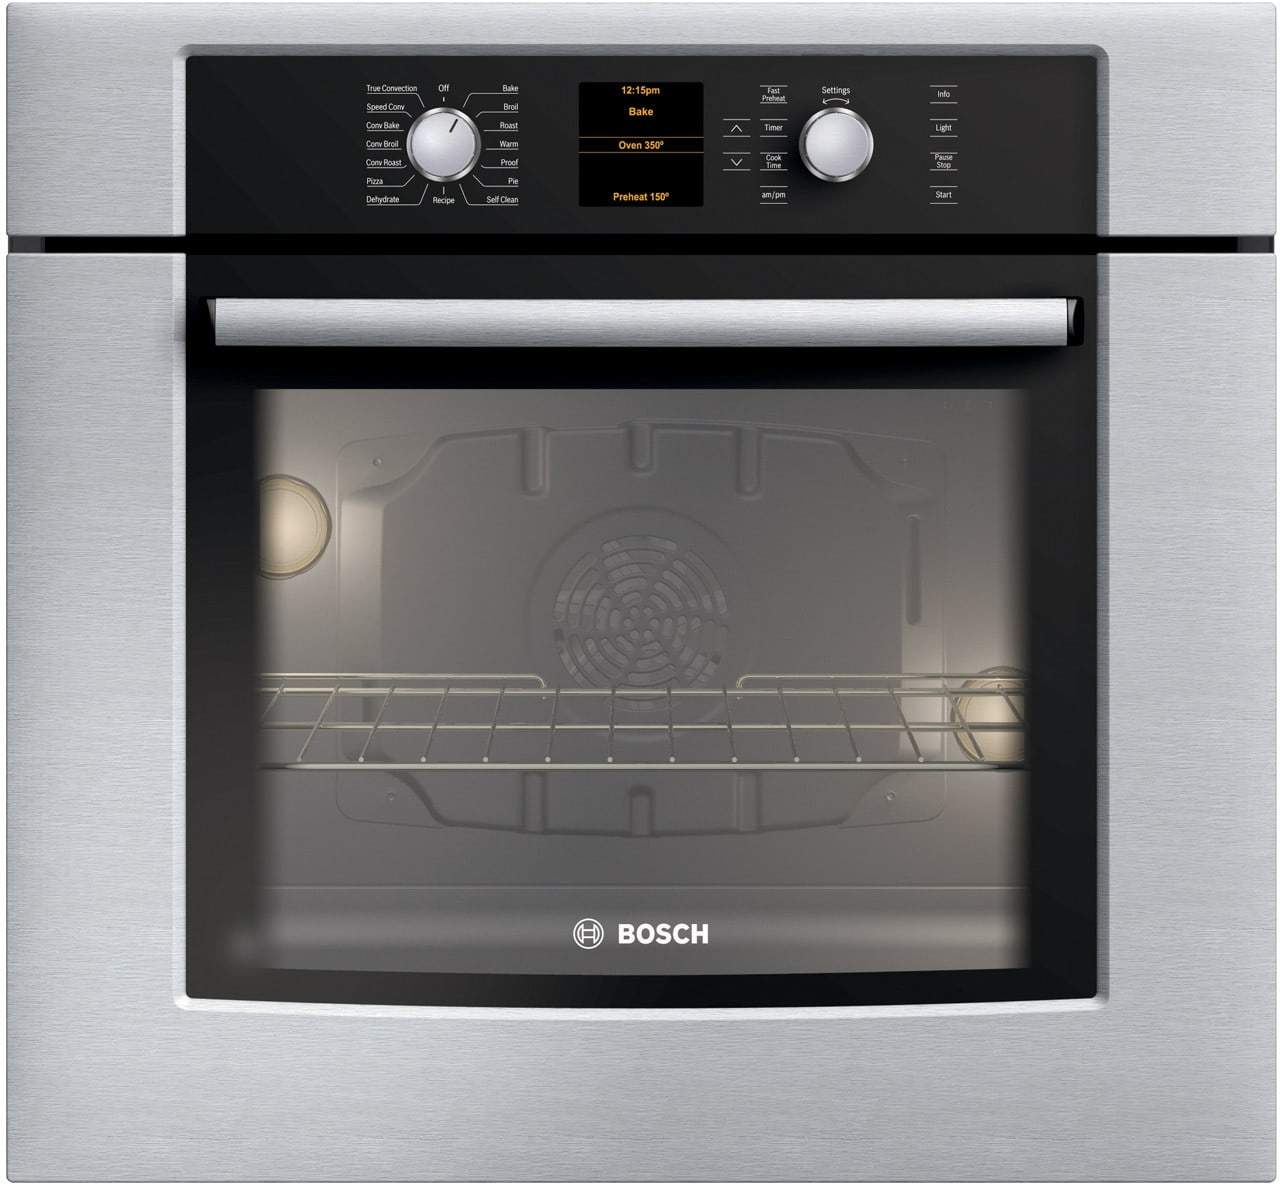 Bosch HBL5460UC 30 Inch Electric Wall Oven with Genuine European  Convection, 16 Cooking Modes, Glass Touch Controls with Ergonomic  Retractable Dials and ...